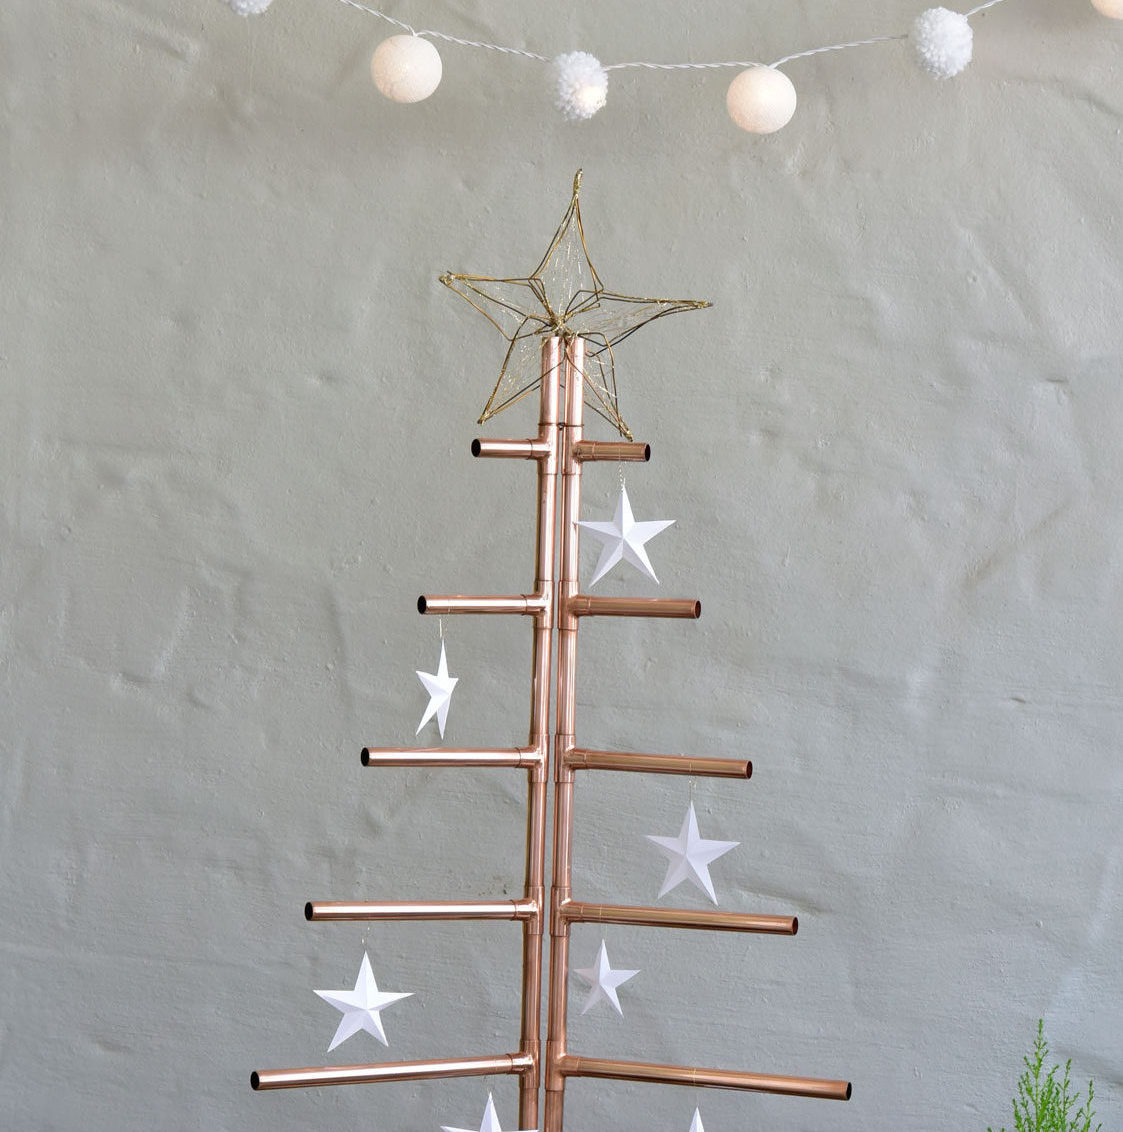 Make a Christmas tree from copper piping SA Garden and Home : DEChandmade04gh e1479727338443 from www.gardenandhome.co.za size 1123 x 1132 jpeg 164kB